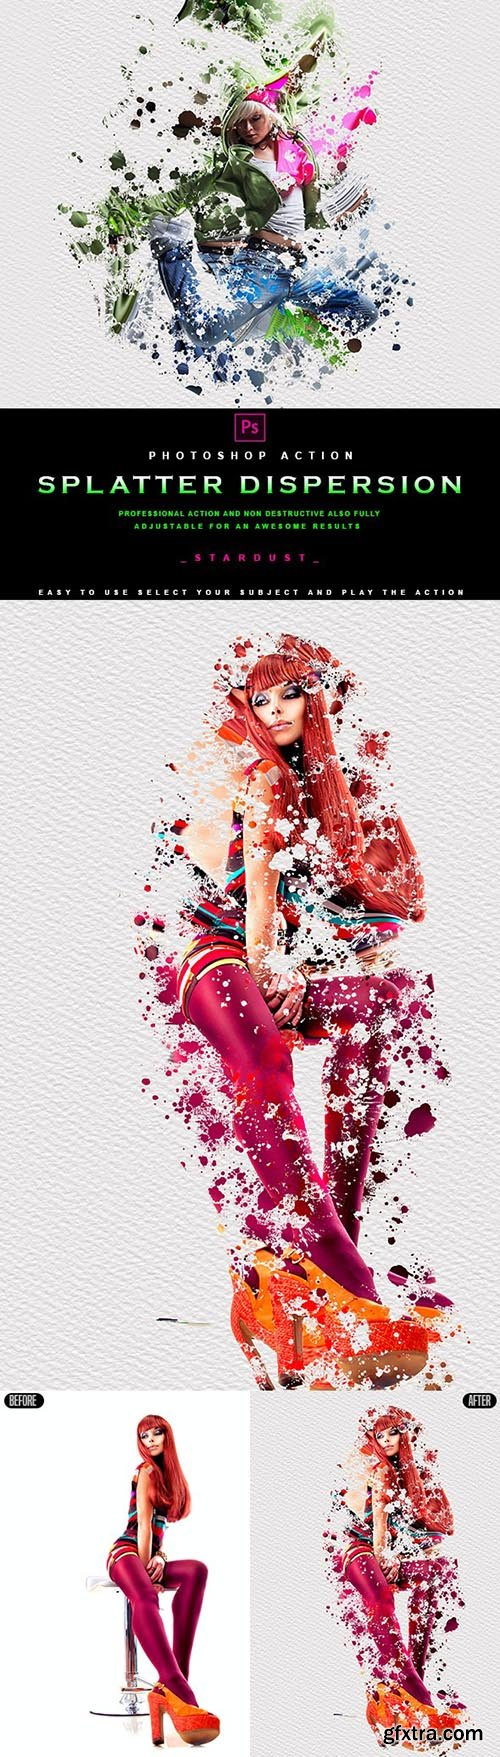 GraphicRiver - Splatter Dispersion - Photoshop Action 29859938